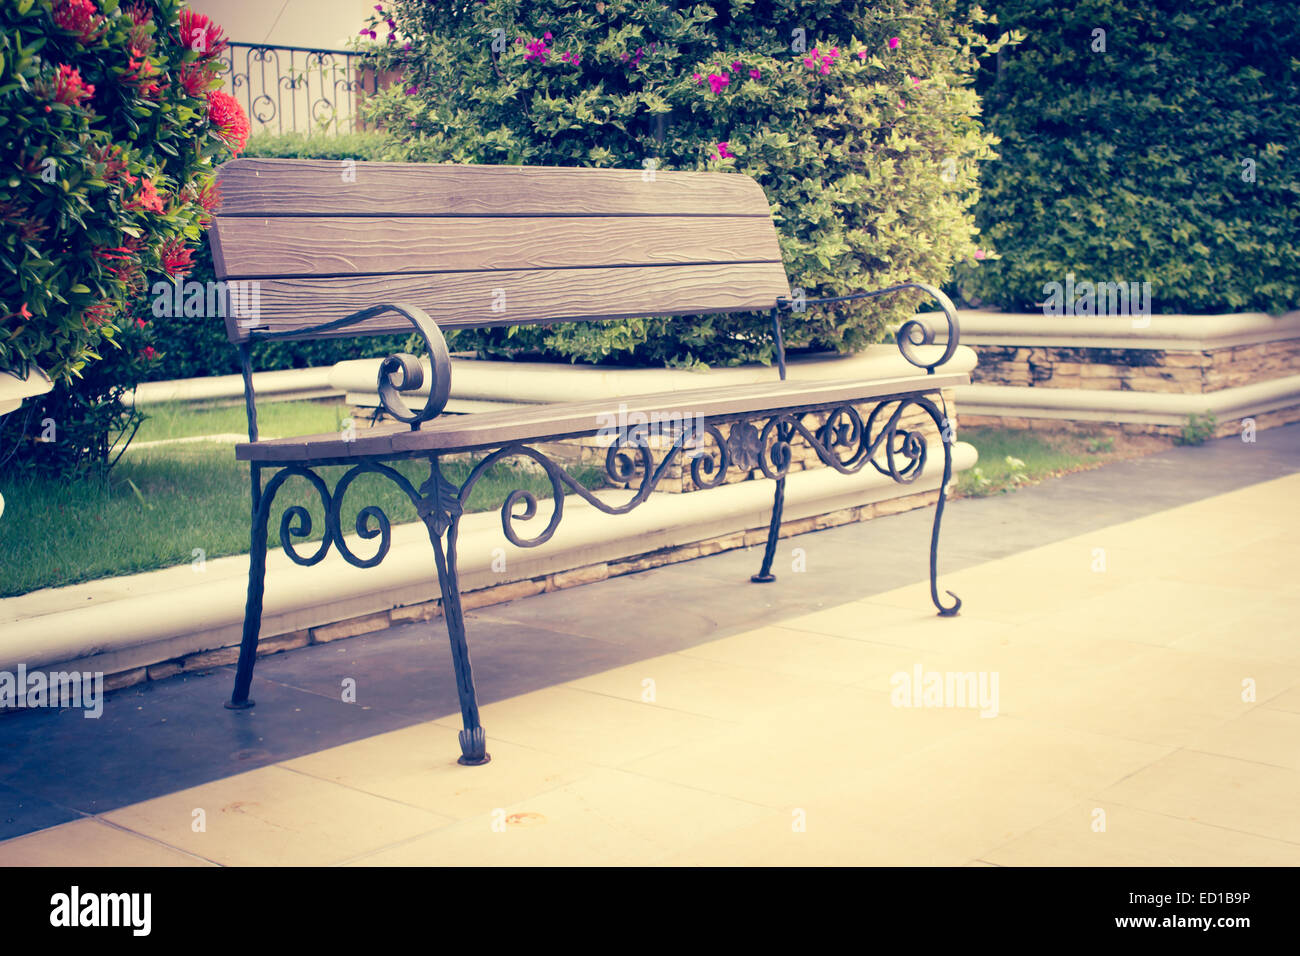 An Antique Bench Style Decorated In The Garden,Retro   Stock Image